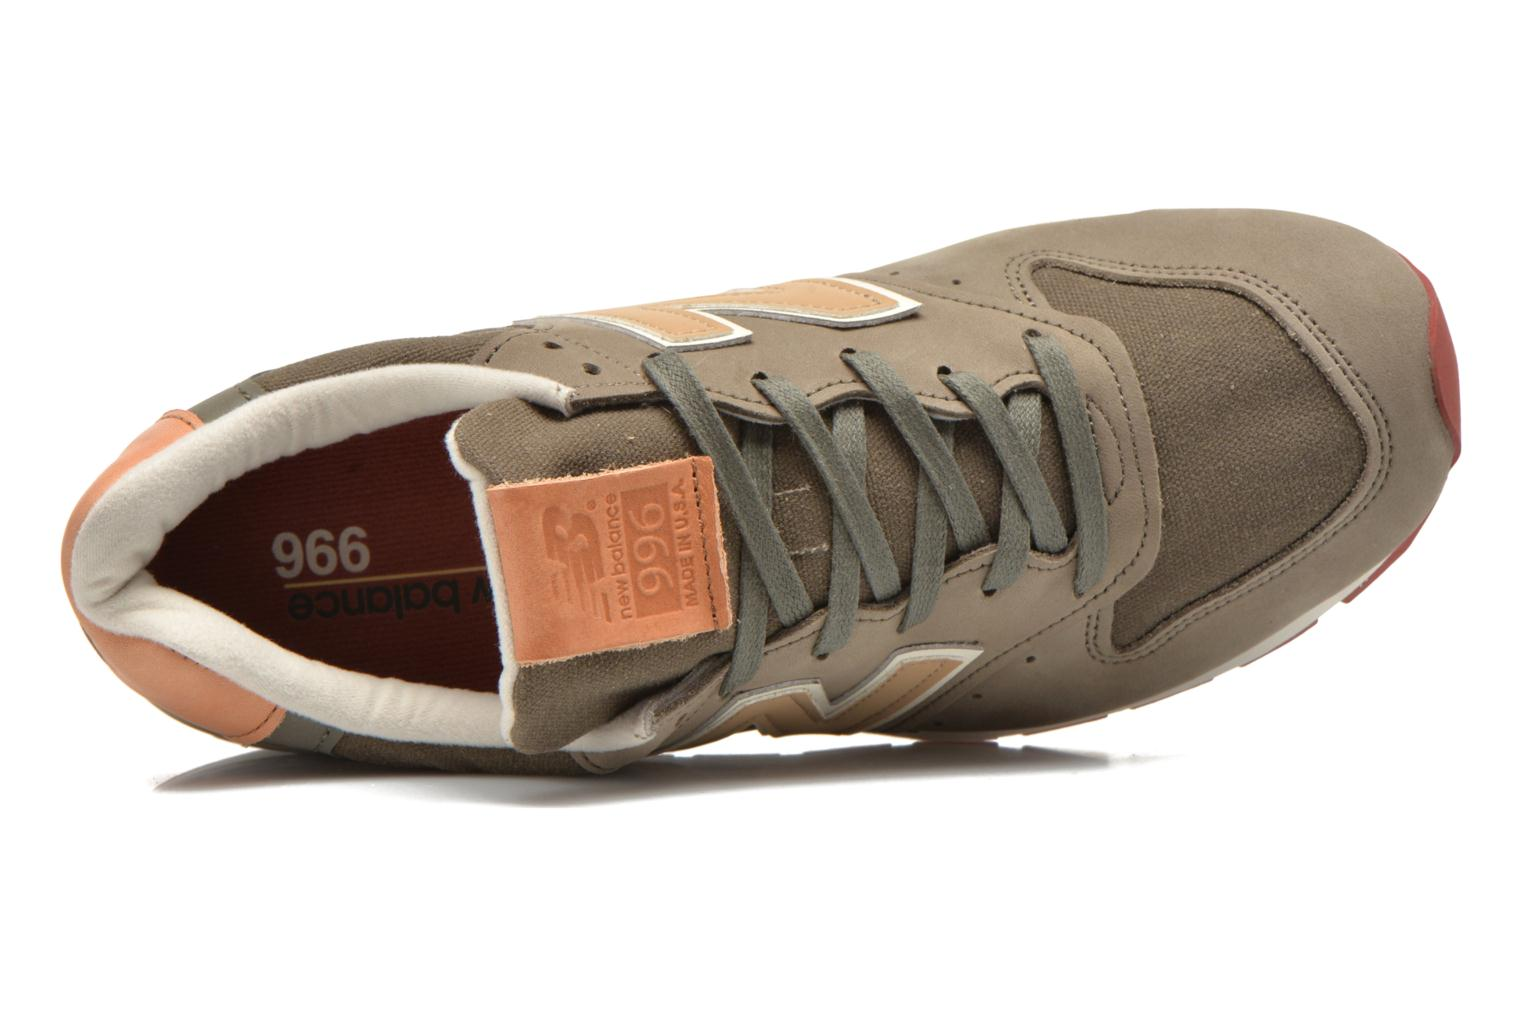 M996 D dol dusty olive